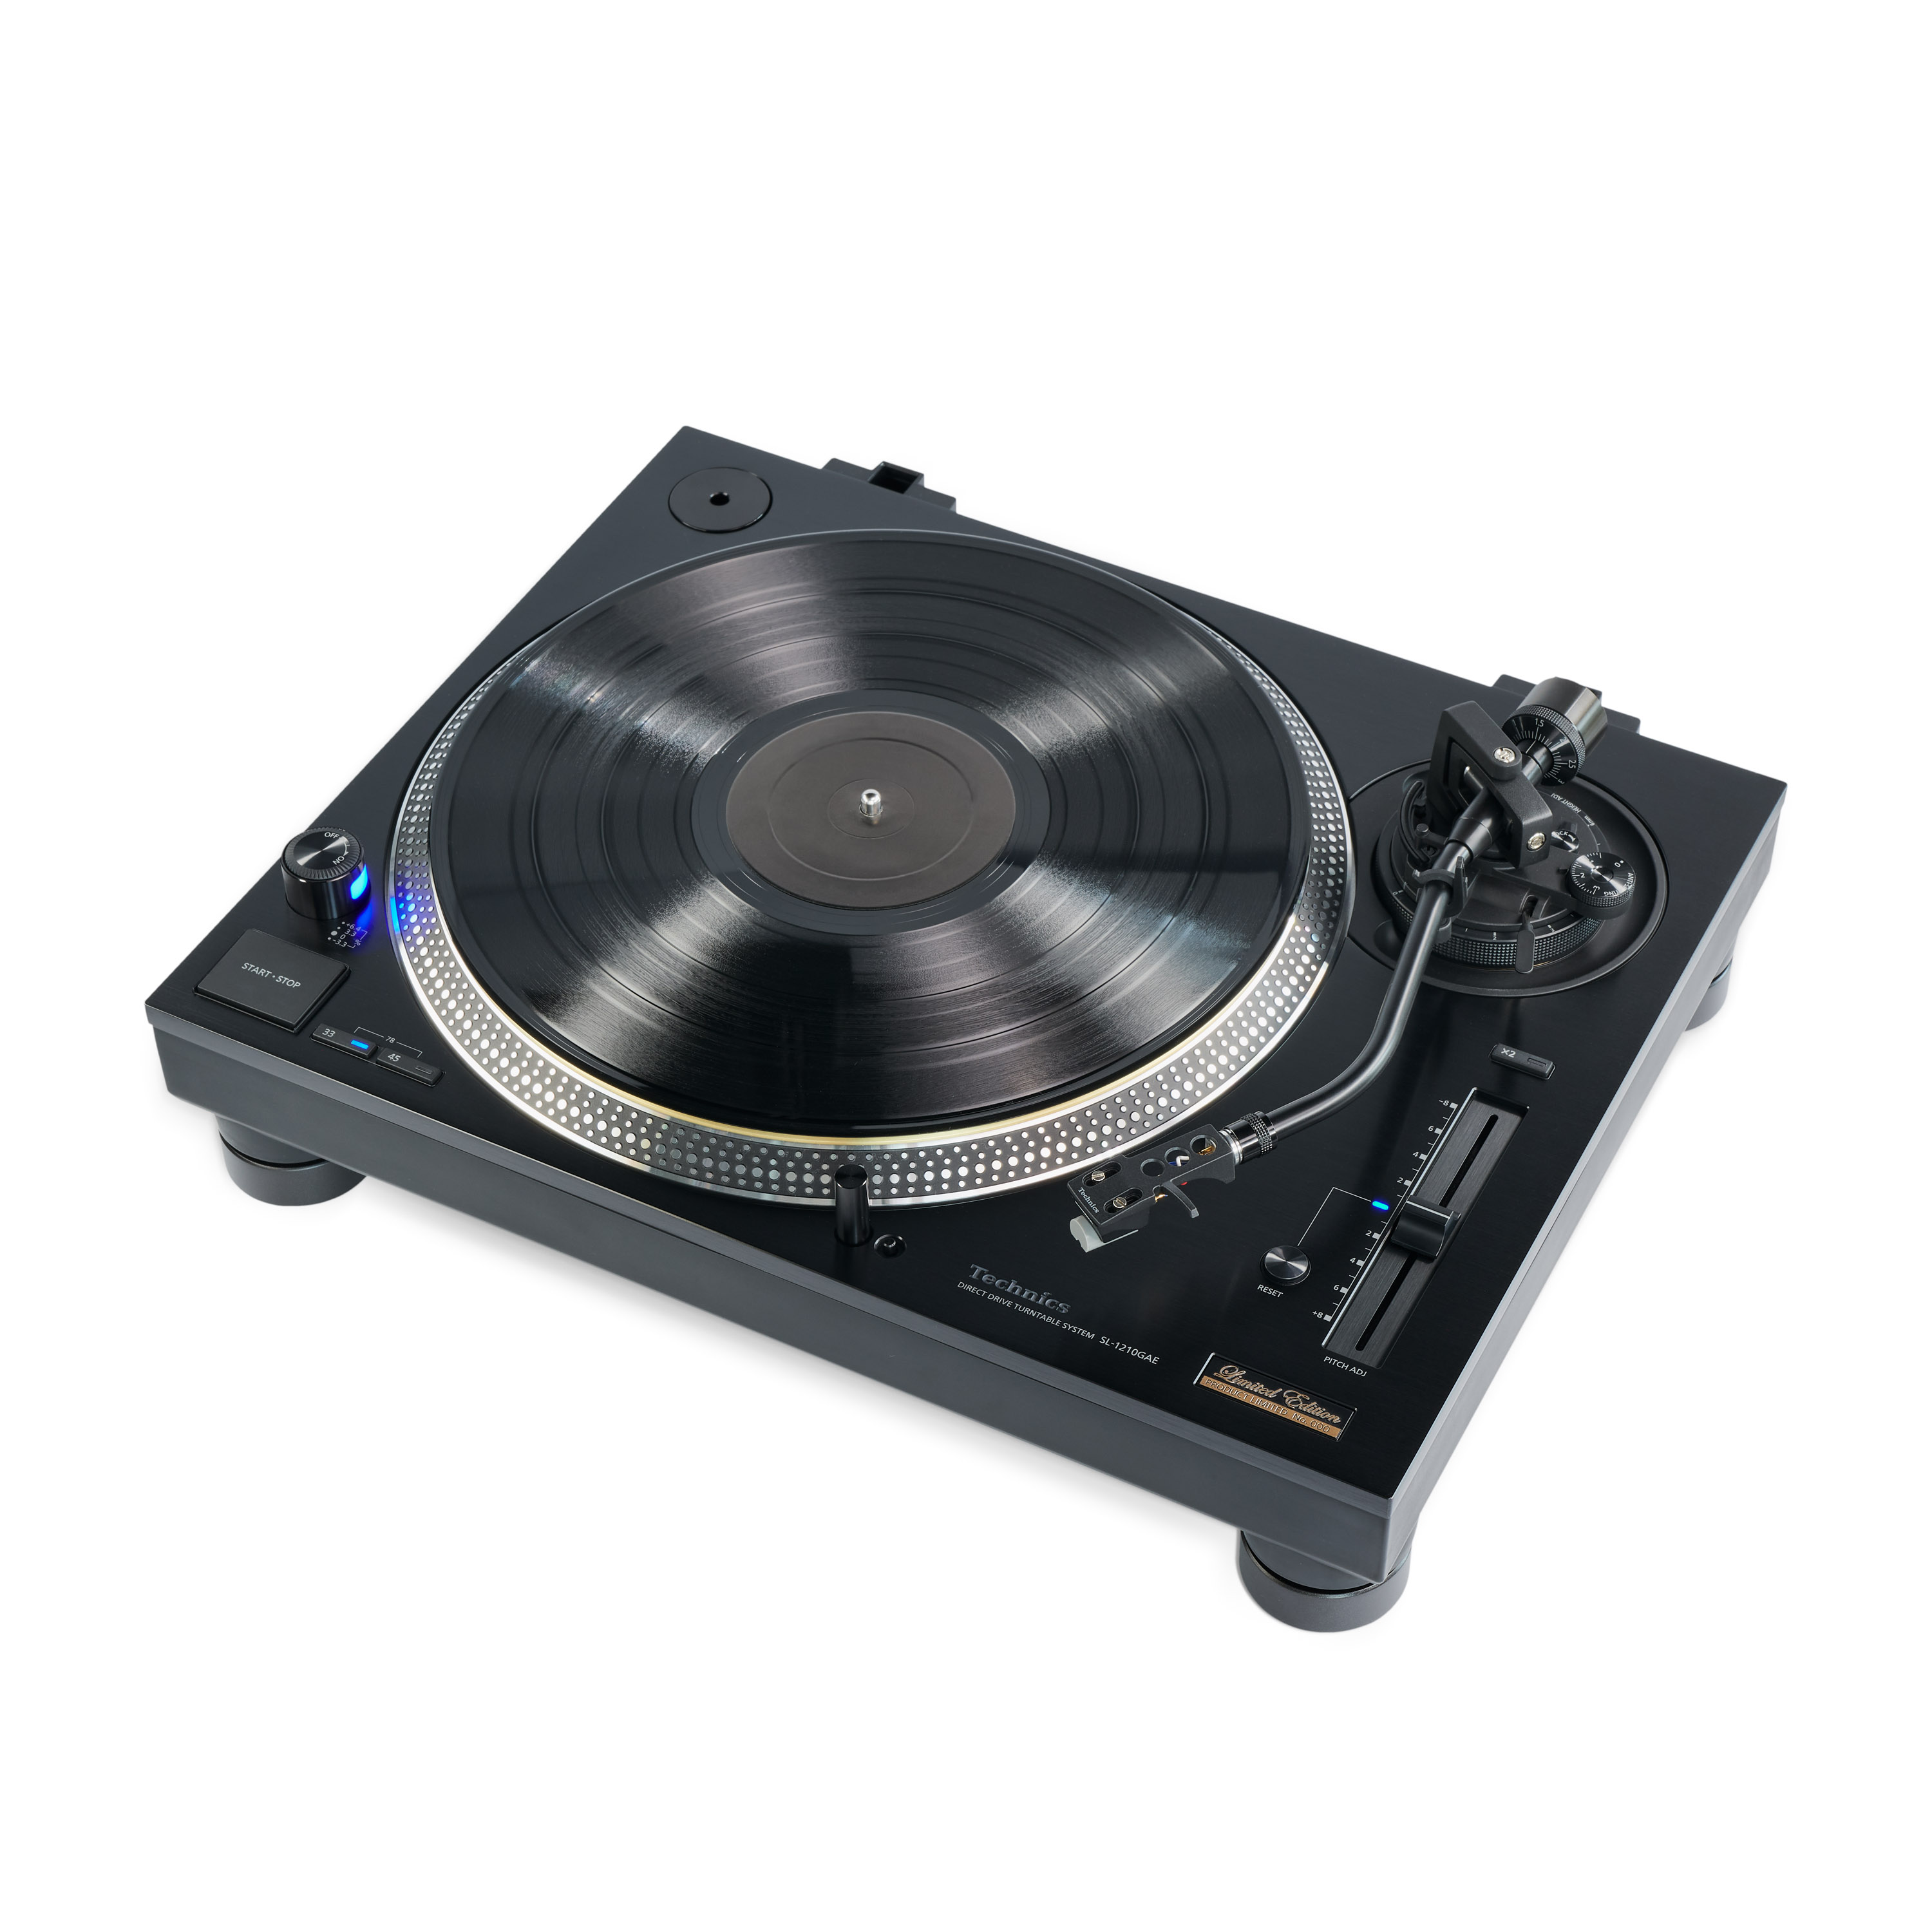 Technics SL-1210GAE 55th Anniversary Turntable - Coming Soon